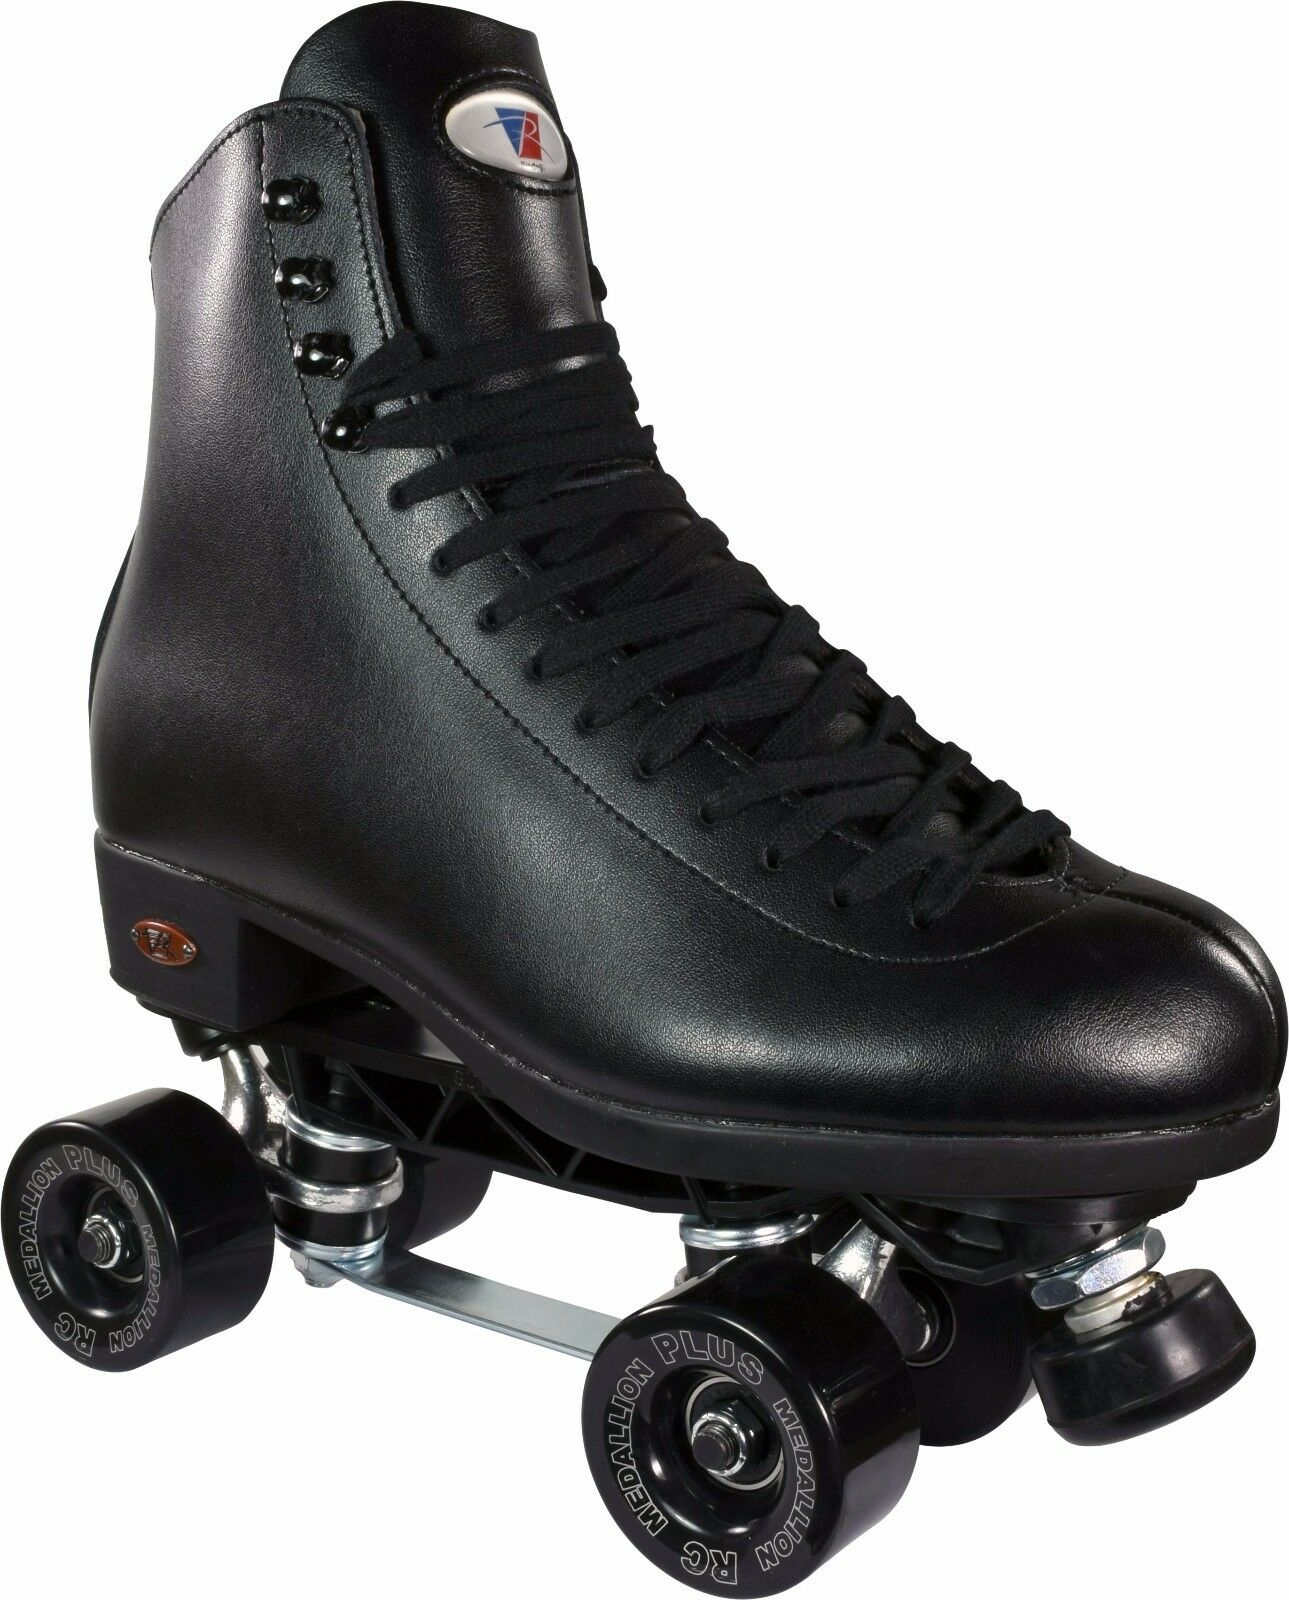 Riedell 120 Medallion Roller Skates Men Größe 4-16 - Large Größe Skates Available